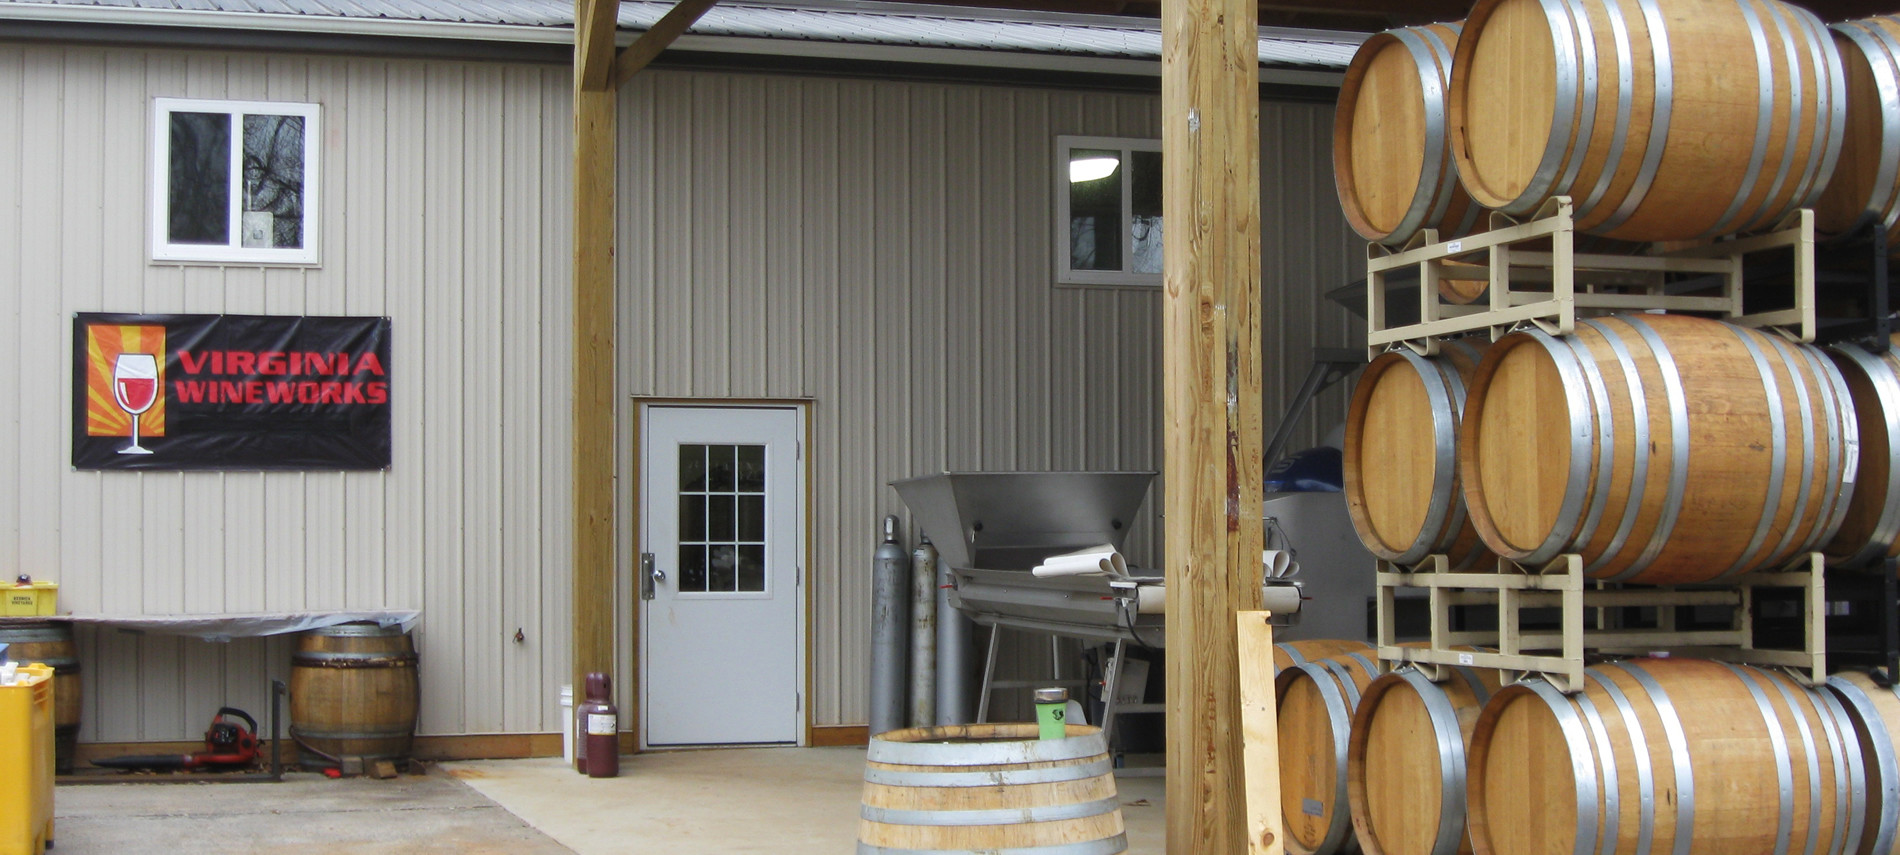 Exterior view of winery, brown barrels stacked in rack